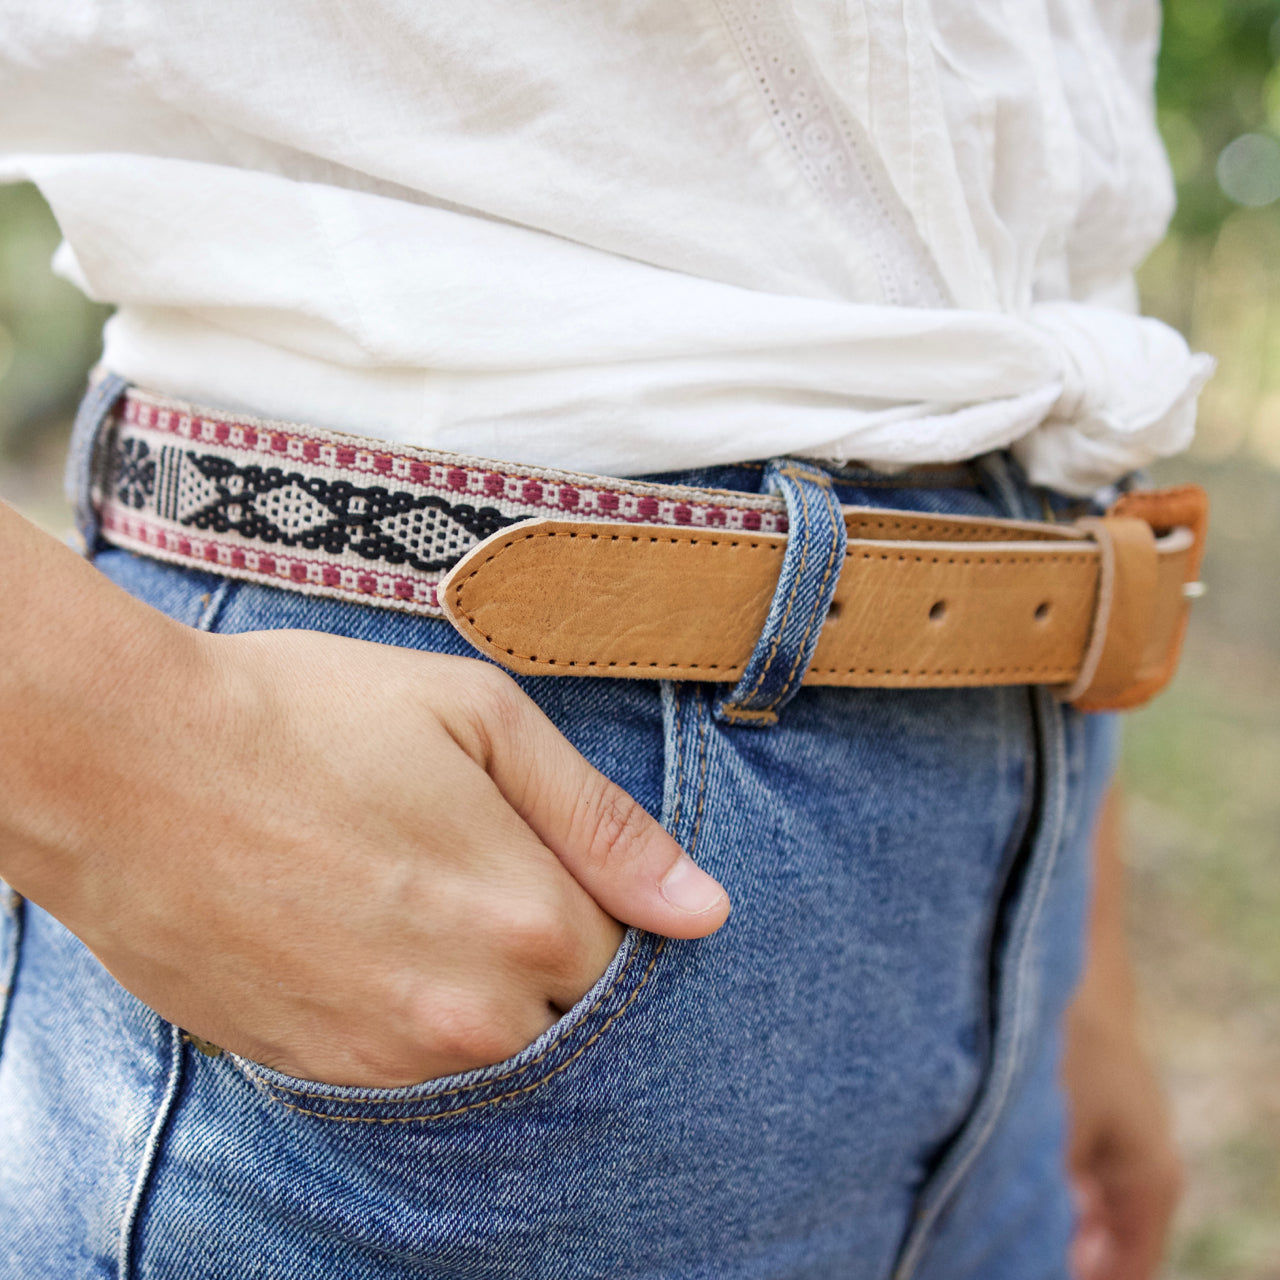 Santo Tomas Belt - Size 32 No. 08